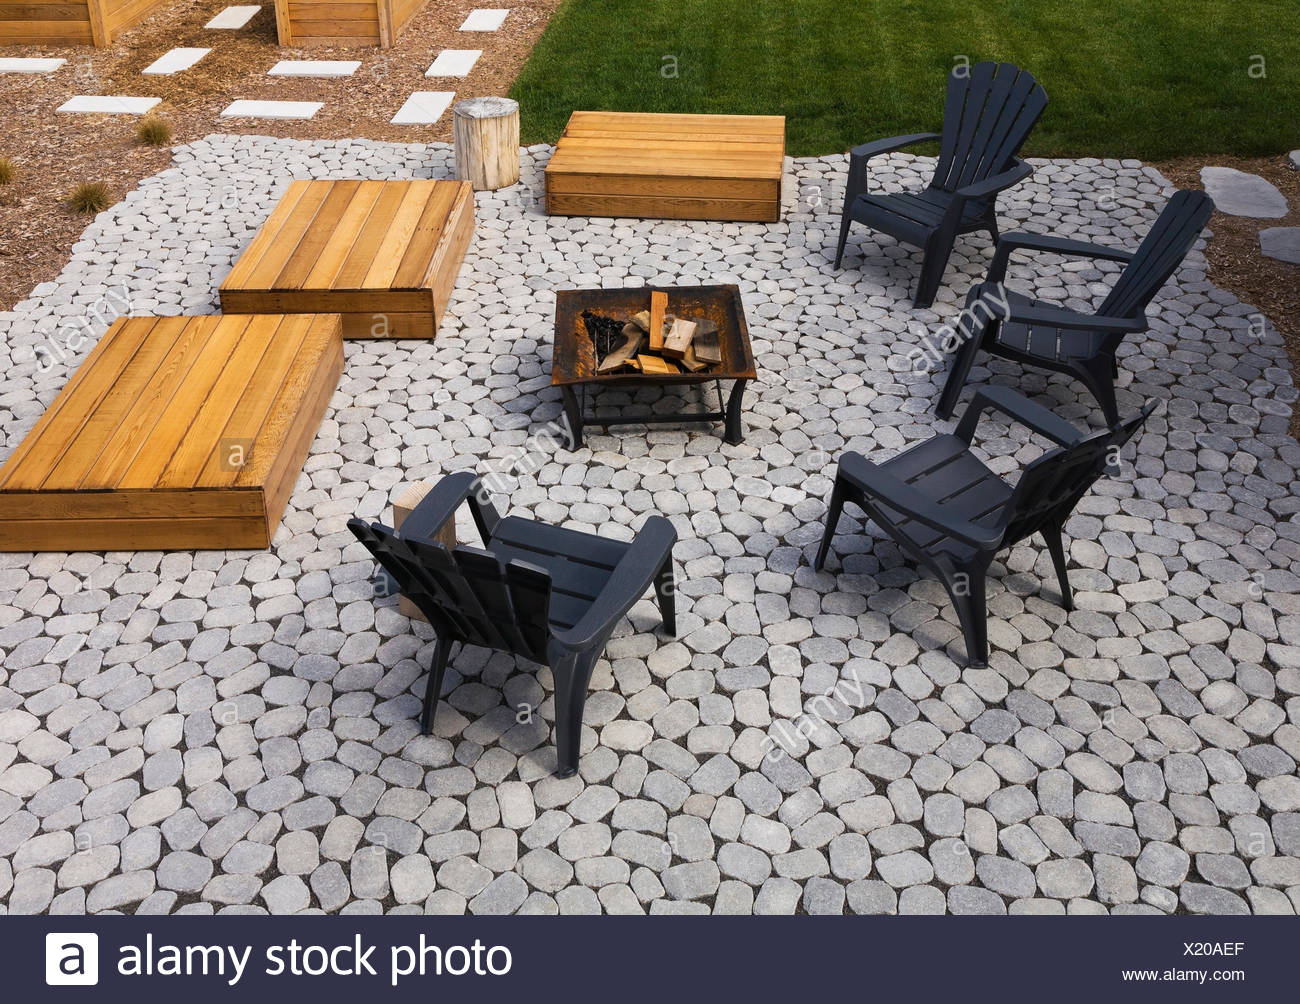 Admirable Paving Stone Patio With Adirondack Chairs Red Cedar Wooden Machost Co Dining Chair Design Ideas Machostcouk